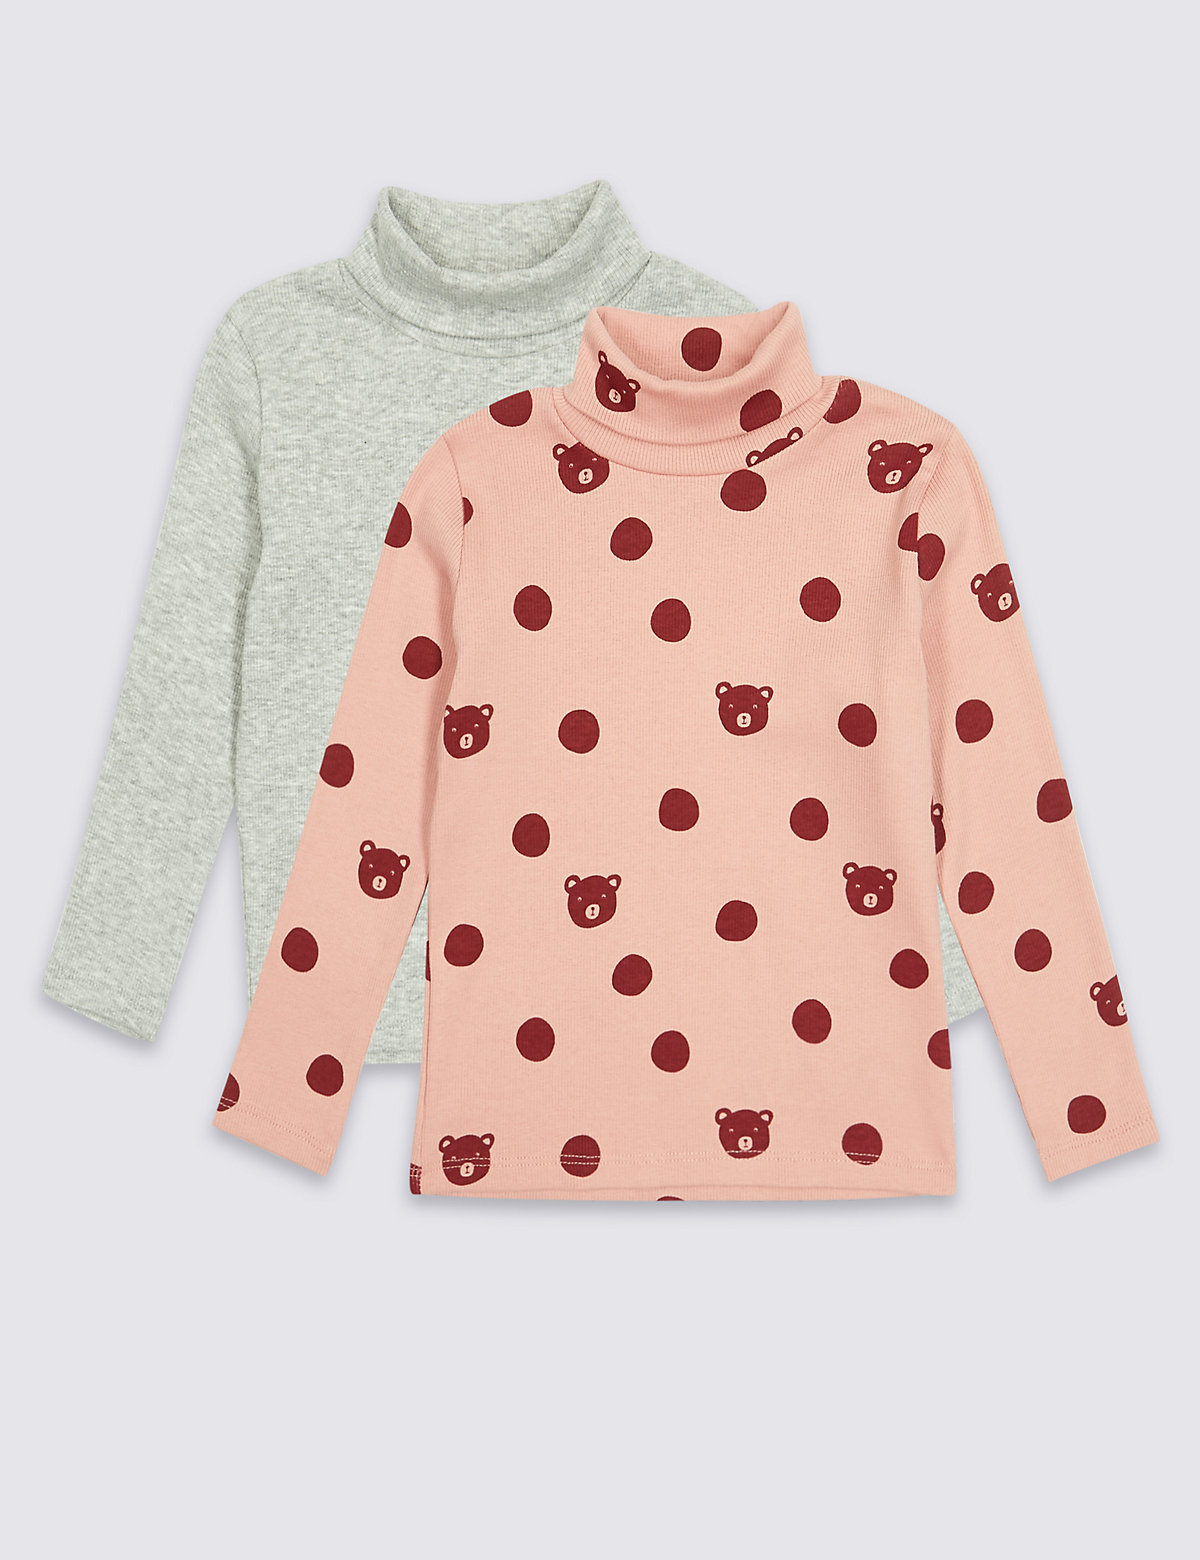 2 Pack Cotton Rich Tops (3 Months - 6 Years)